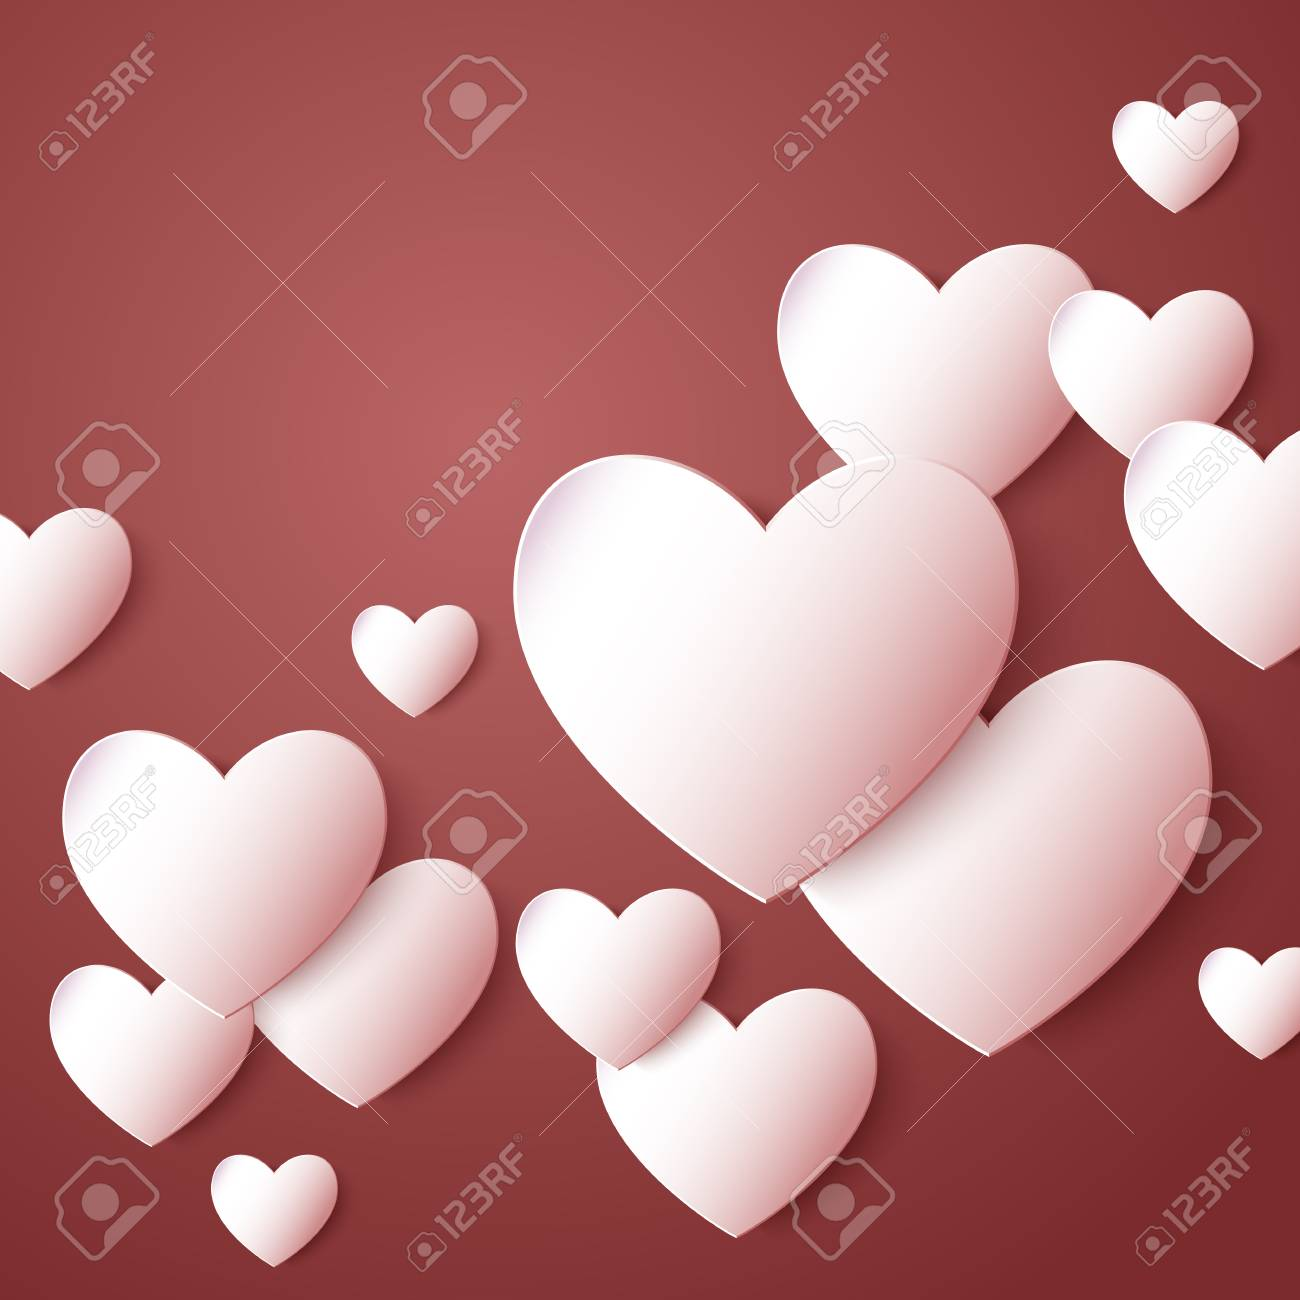 Abstract paper hearts. Love. Vector illustration Stock Vector - 52233407